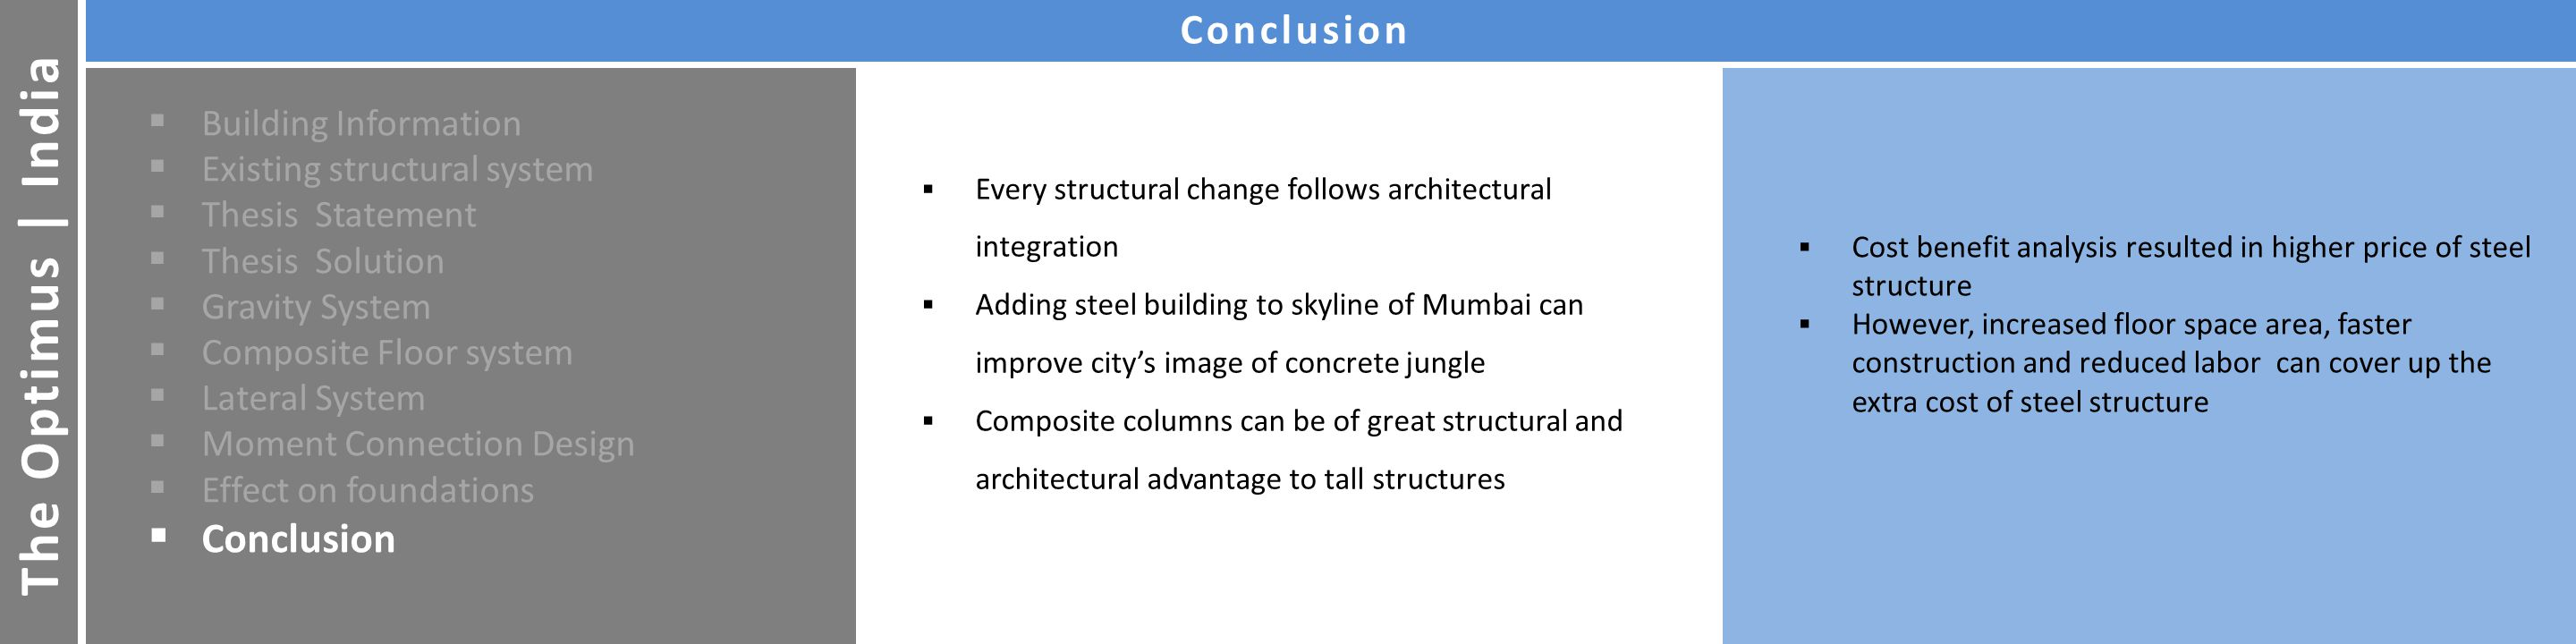 Facades Architecture The Optimus | India Conclusion  Building Information  Existing structural system  Thesis Statement  Thesis Solution  Gravity